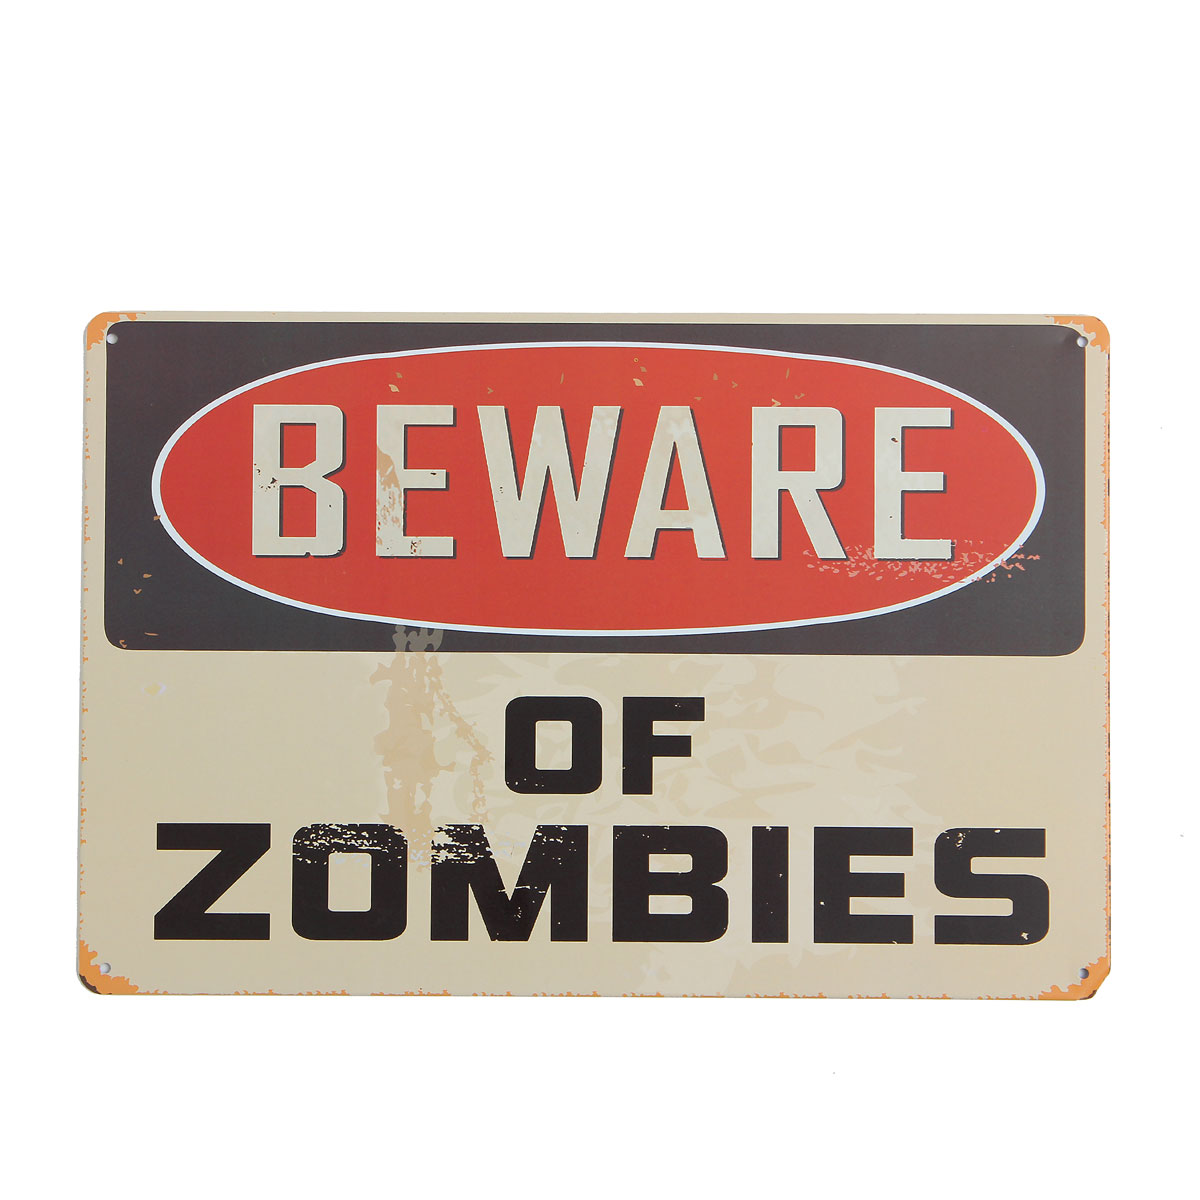 Mischief Beware-Of-Zombie Vintage Tin Sign Garage Shabby Bar Pub Club Haunted House Wall Home Decor Retro Metal Poster Craft Pro